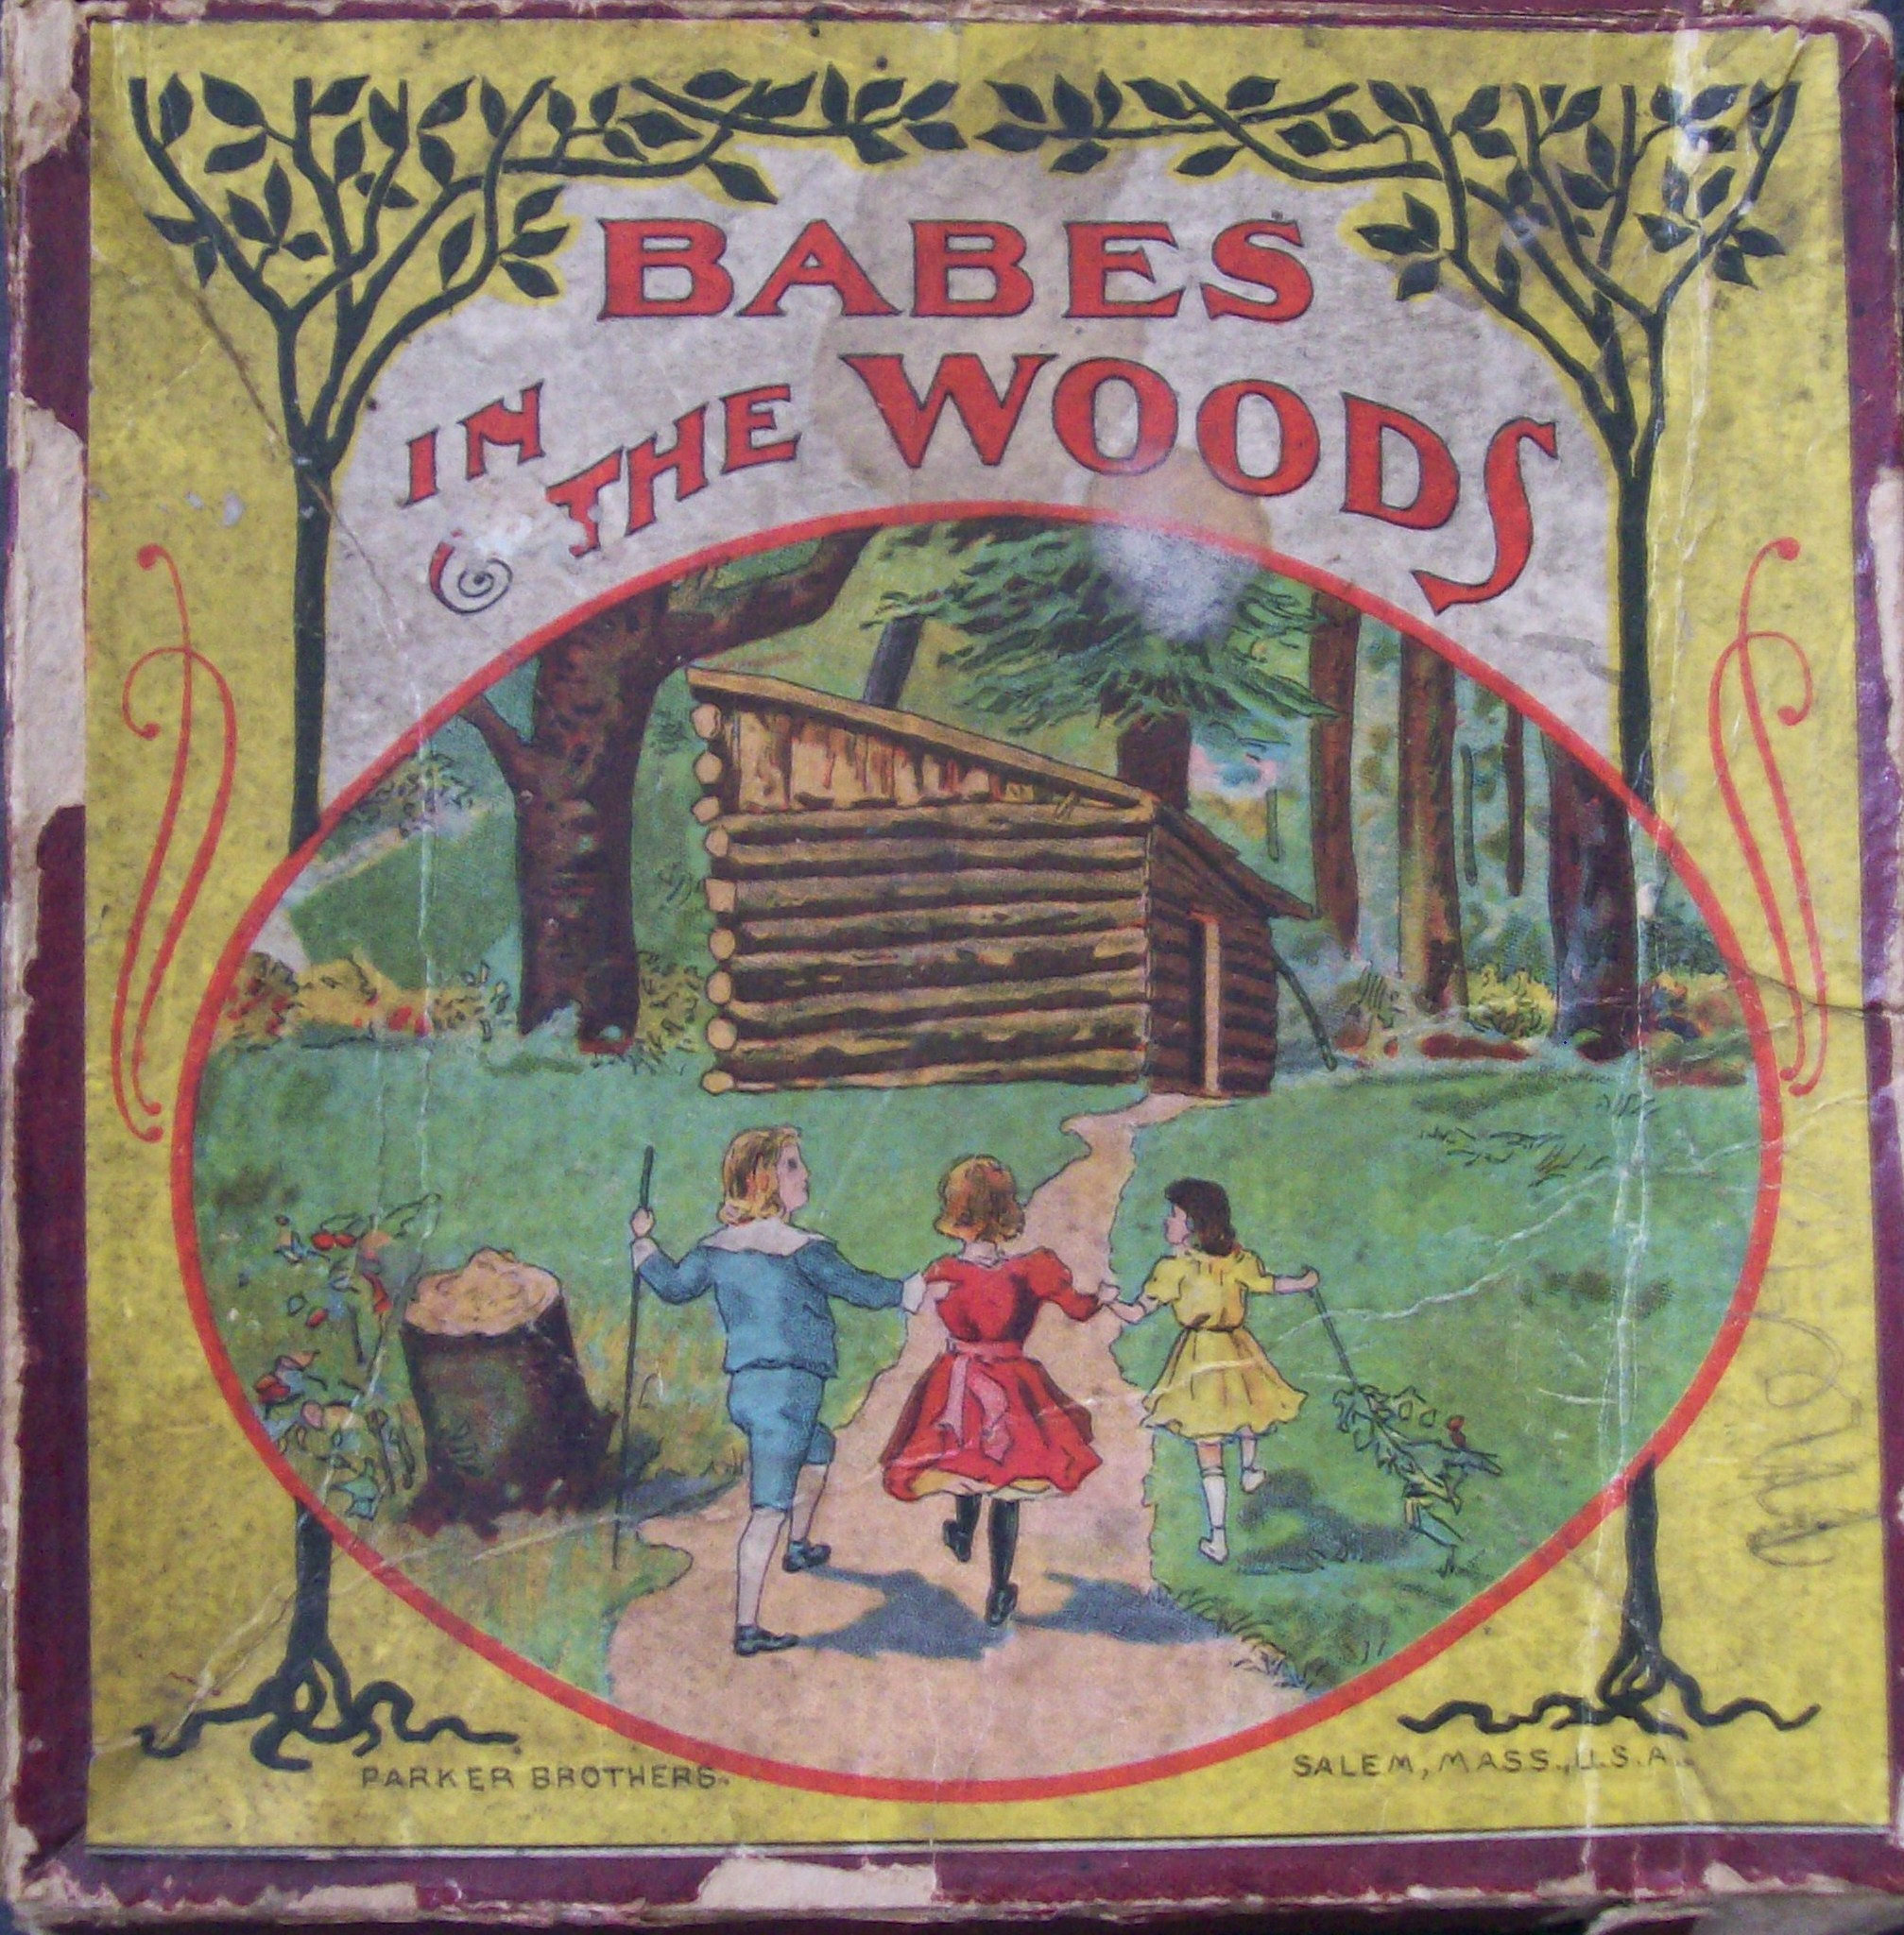 Free Babes Games babes in the woods: old parker brothers board game – all